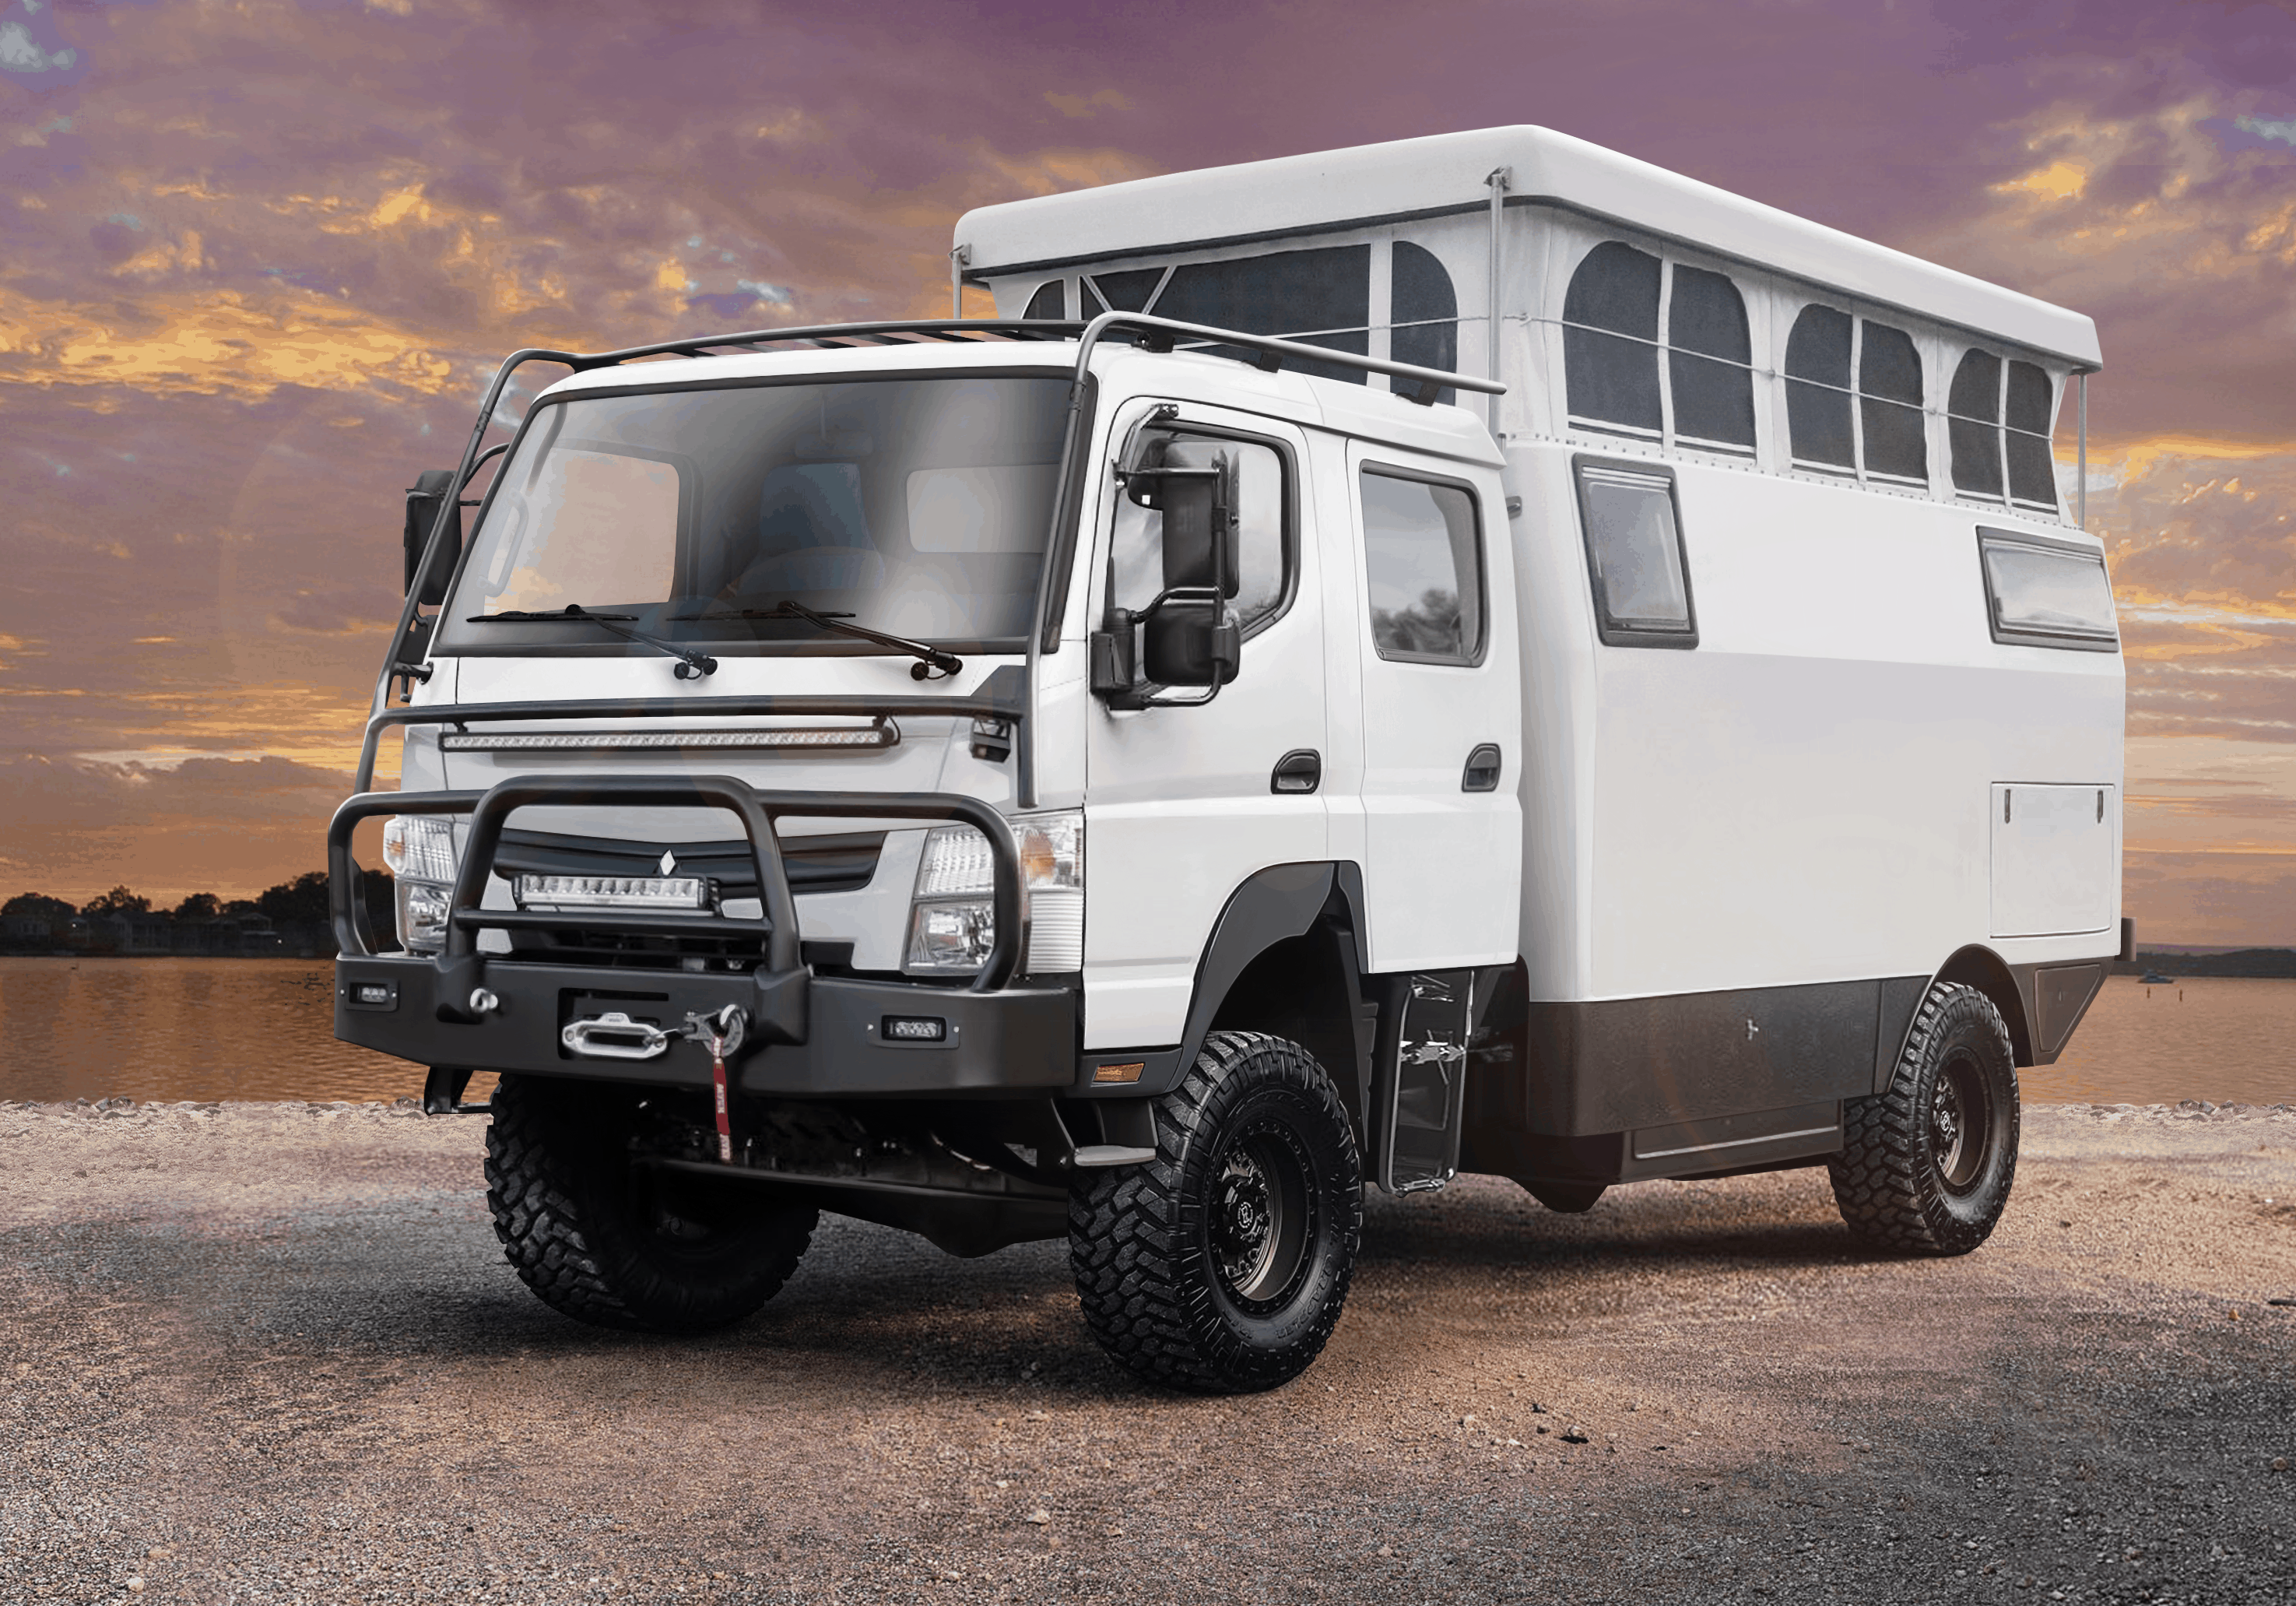 EarthCruiser EXP Mitsubishi Fuso Dual Cab 4x4 with top popped